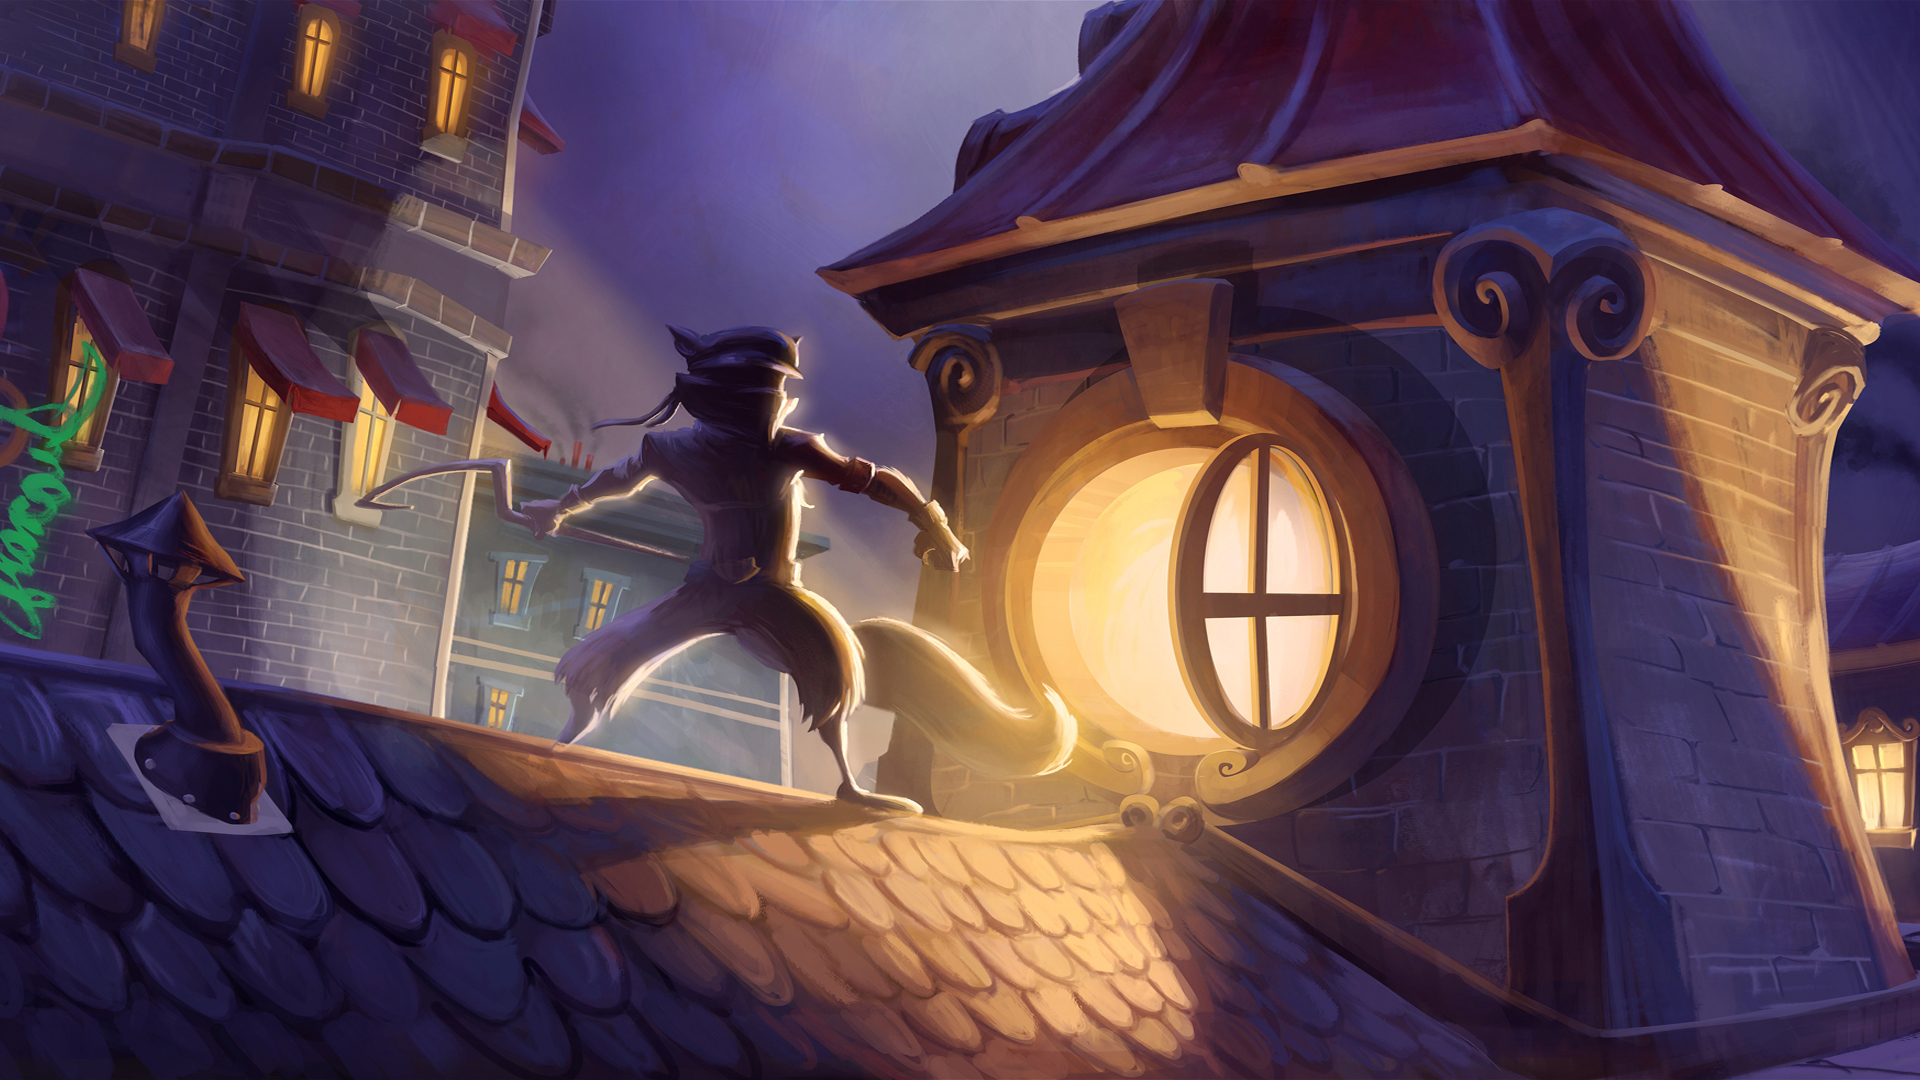 Sly Cooper Thieves In Time Story Info amp New Screenshots 1920x1080